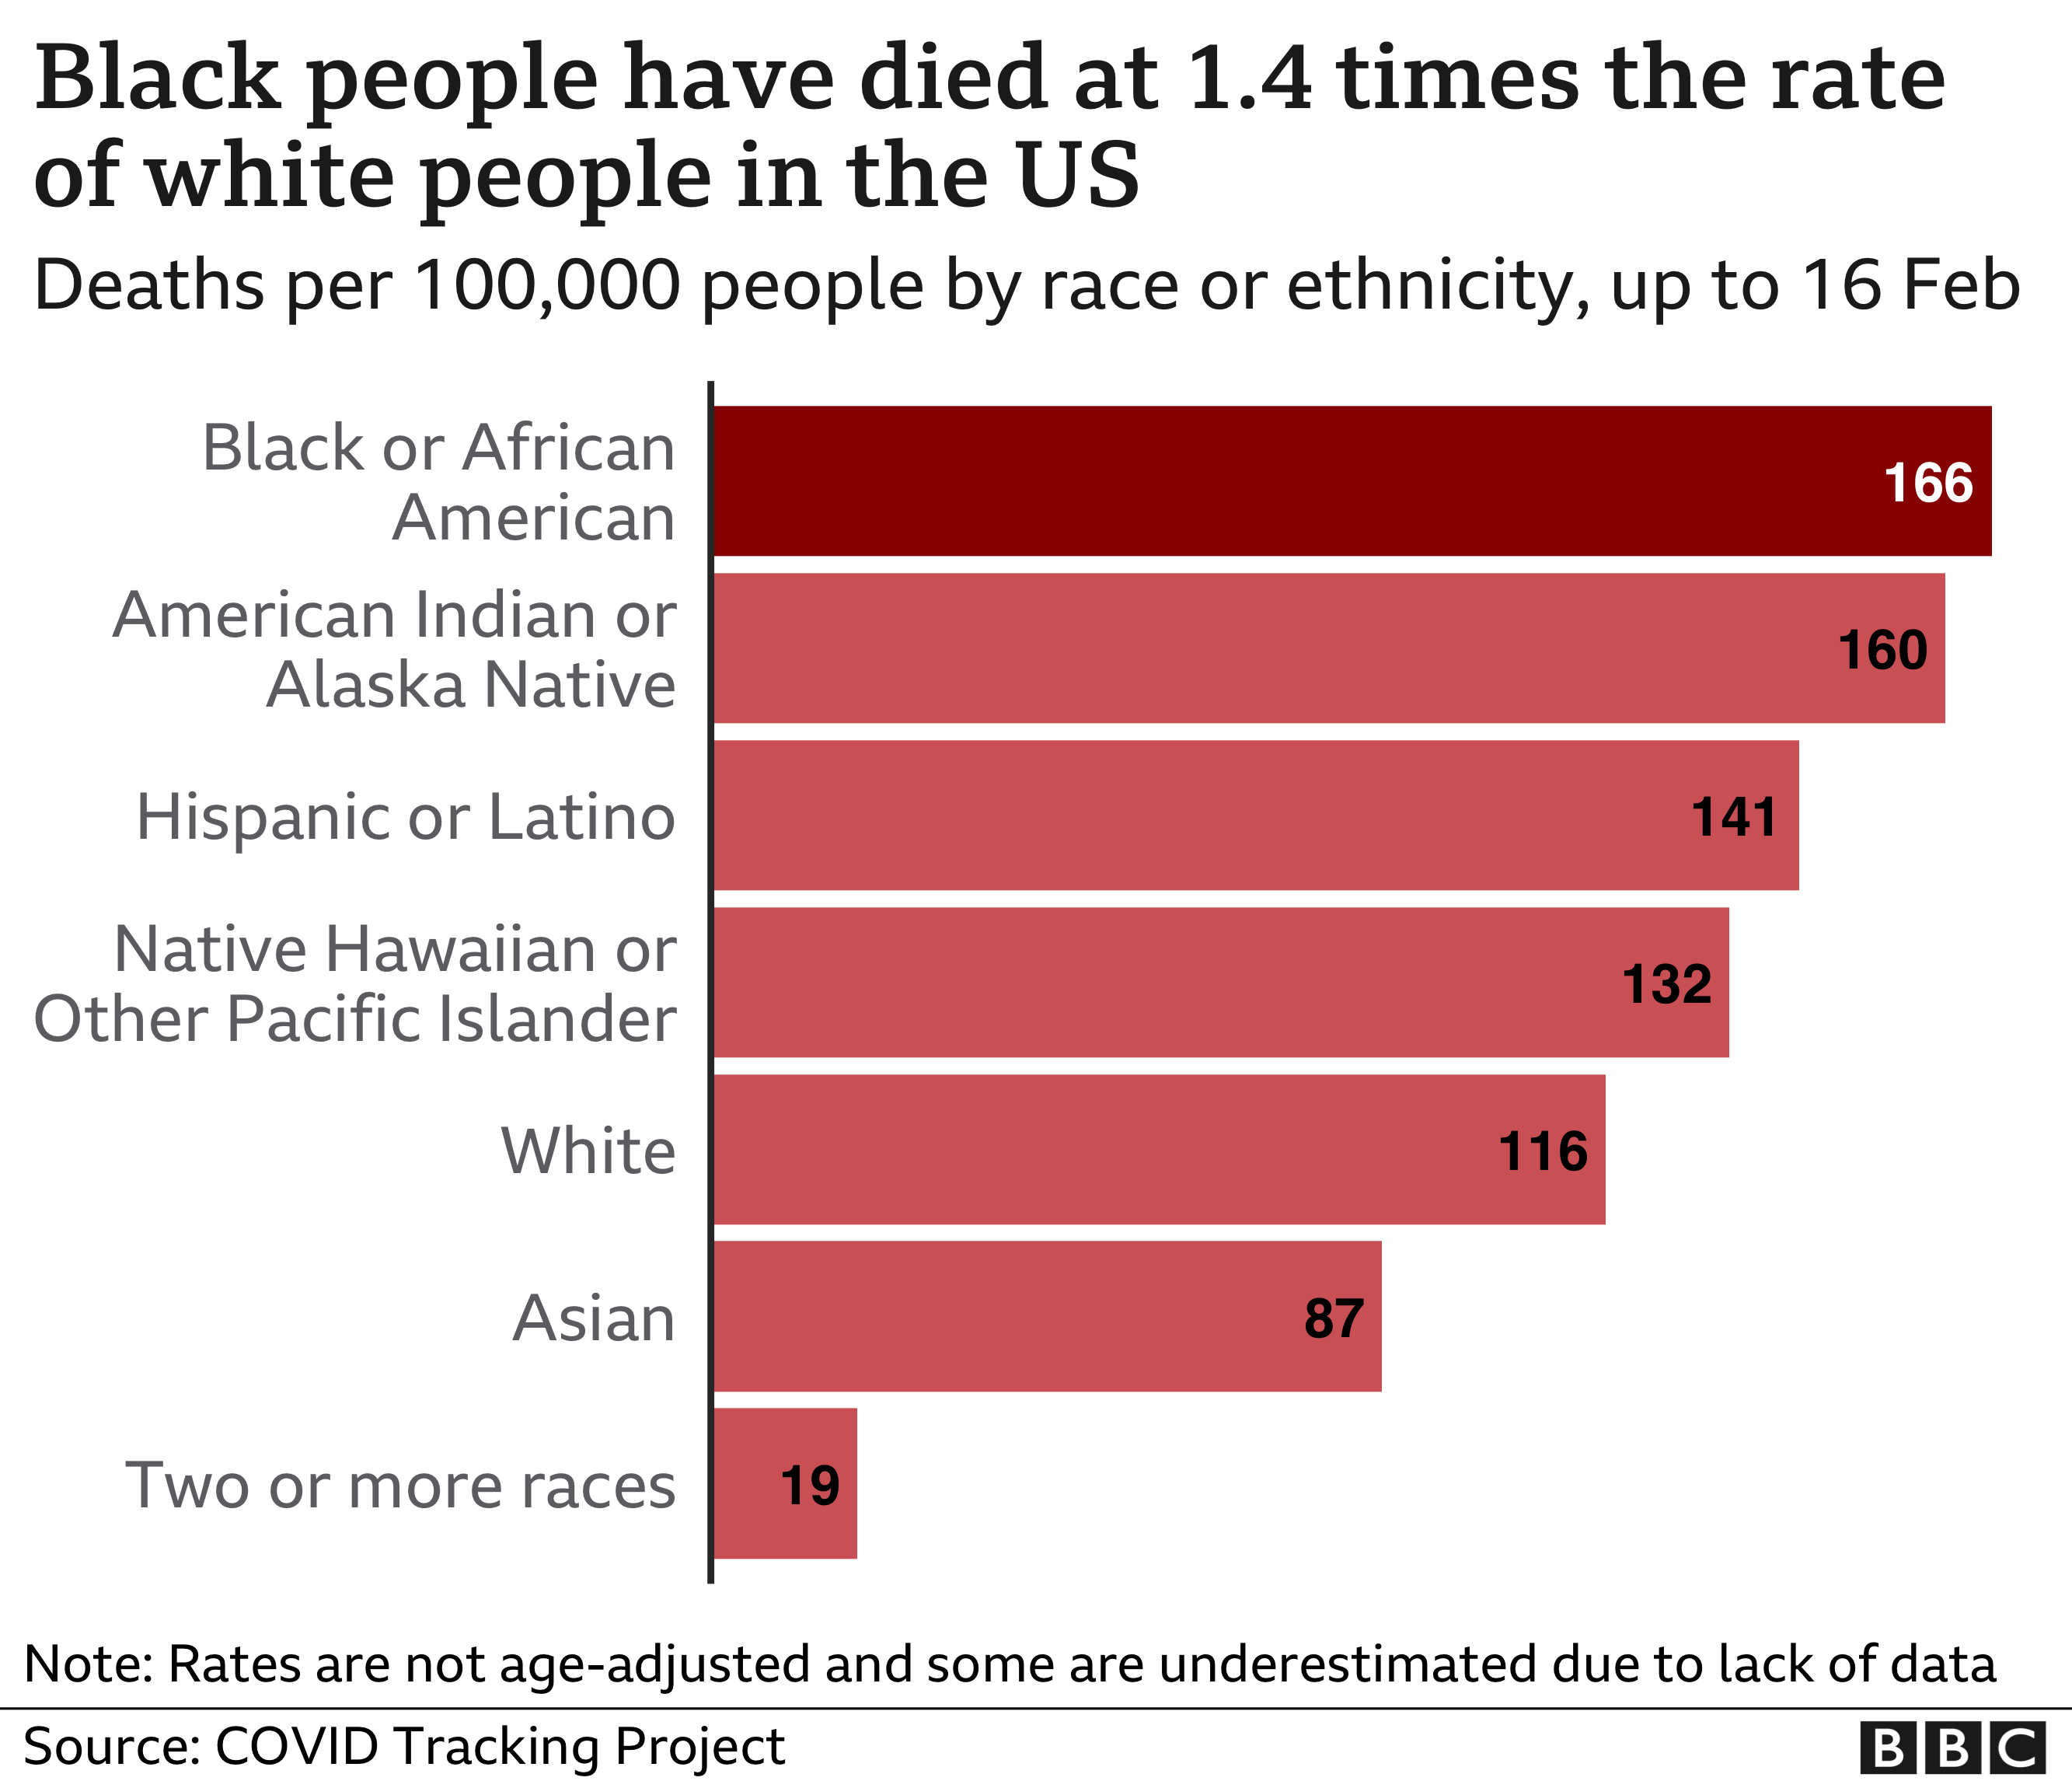 Racial disparities in Covid-19 deaths